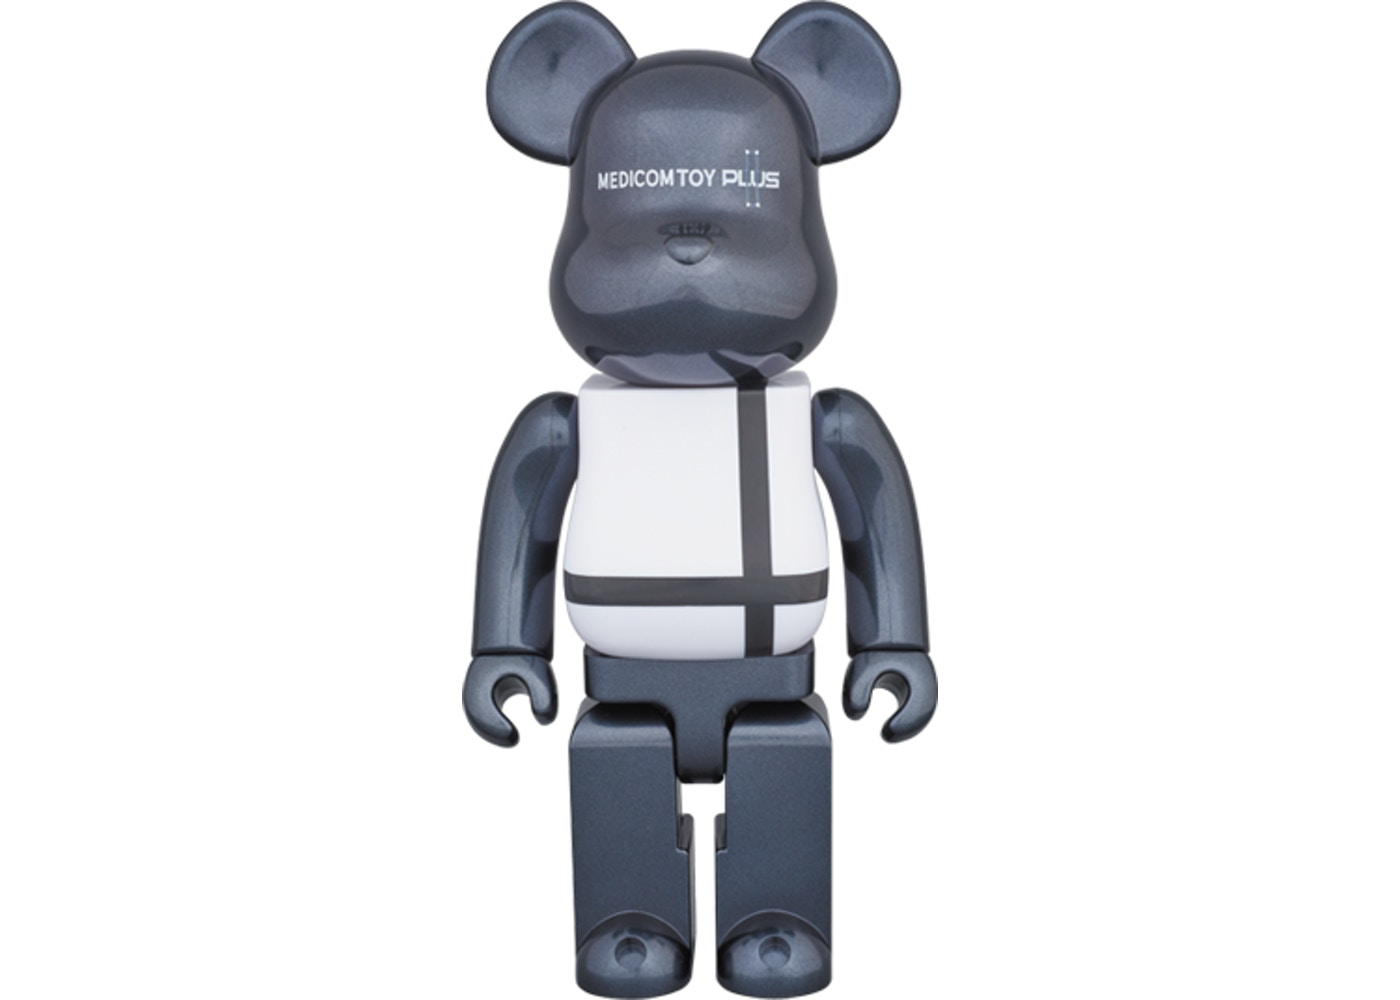 400-bearbrick-medicom-toy-plus-400-black